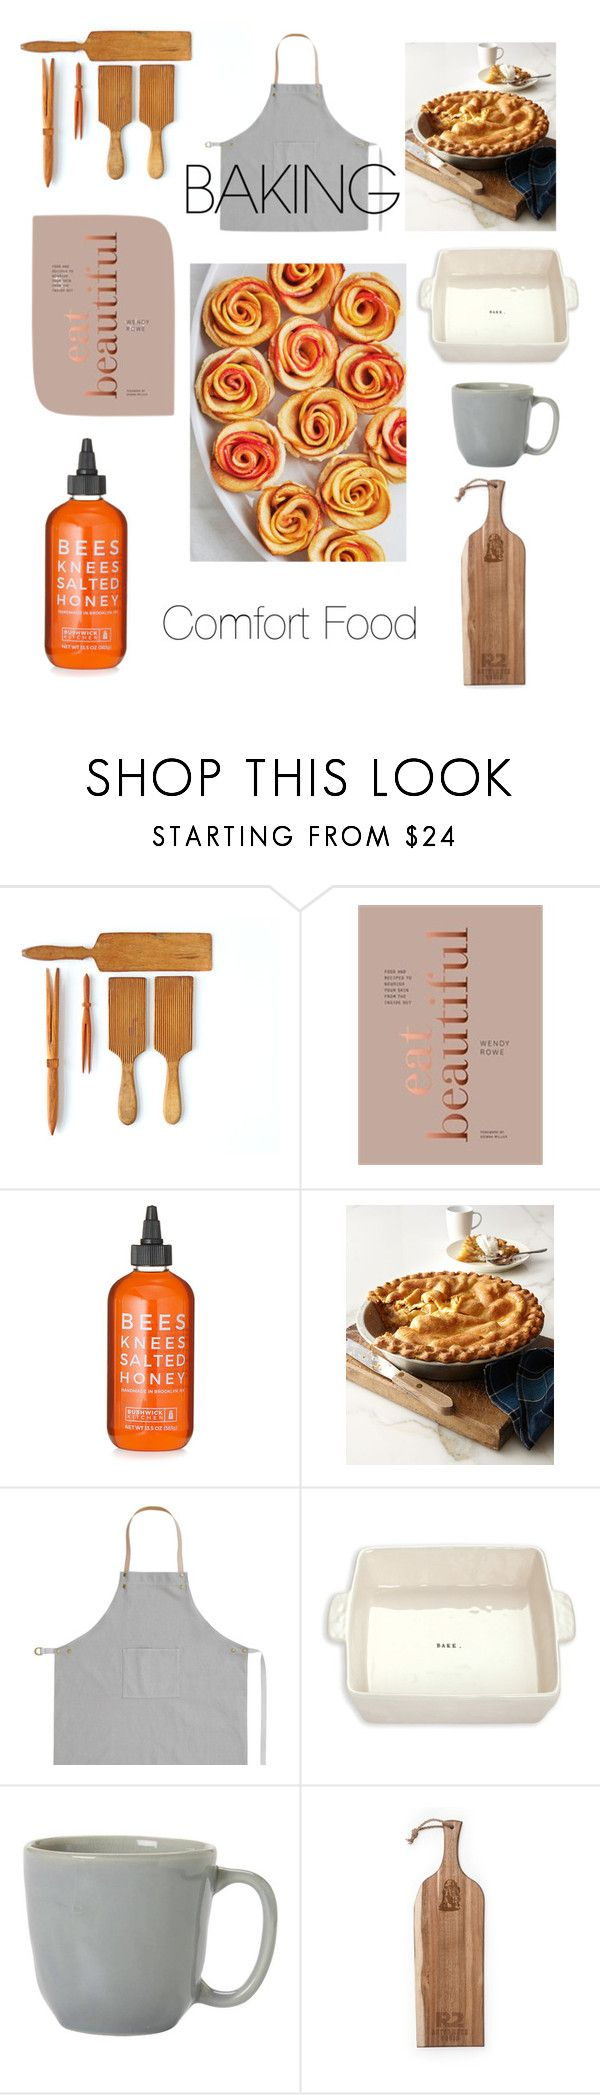 """""""Sunday Baking"""" by elisejas ❤ liked on Polyvore featuring interior, interiors, interior design, home, home decor, interior decorating, Sweet Lady Jane, Rae Dunn, Juliska and Picnic Time"""